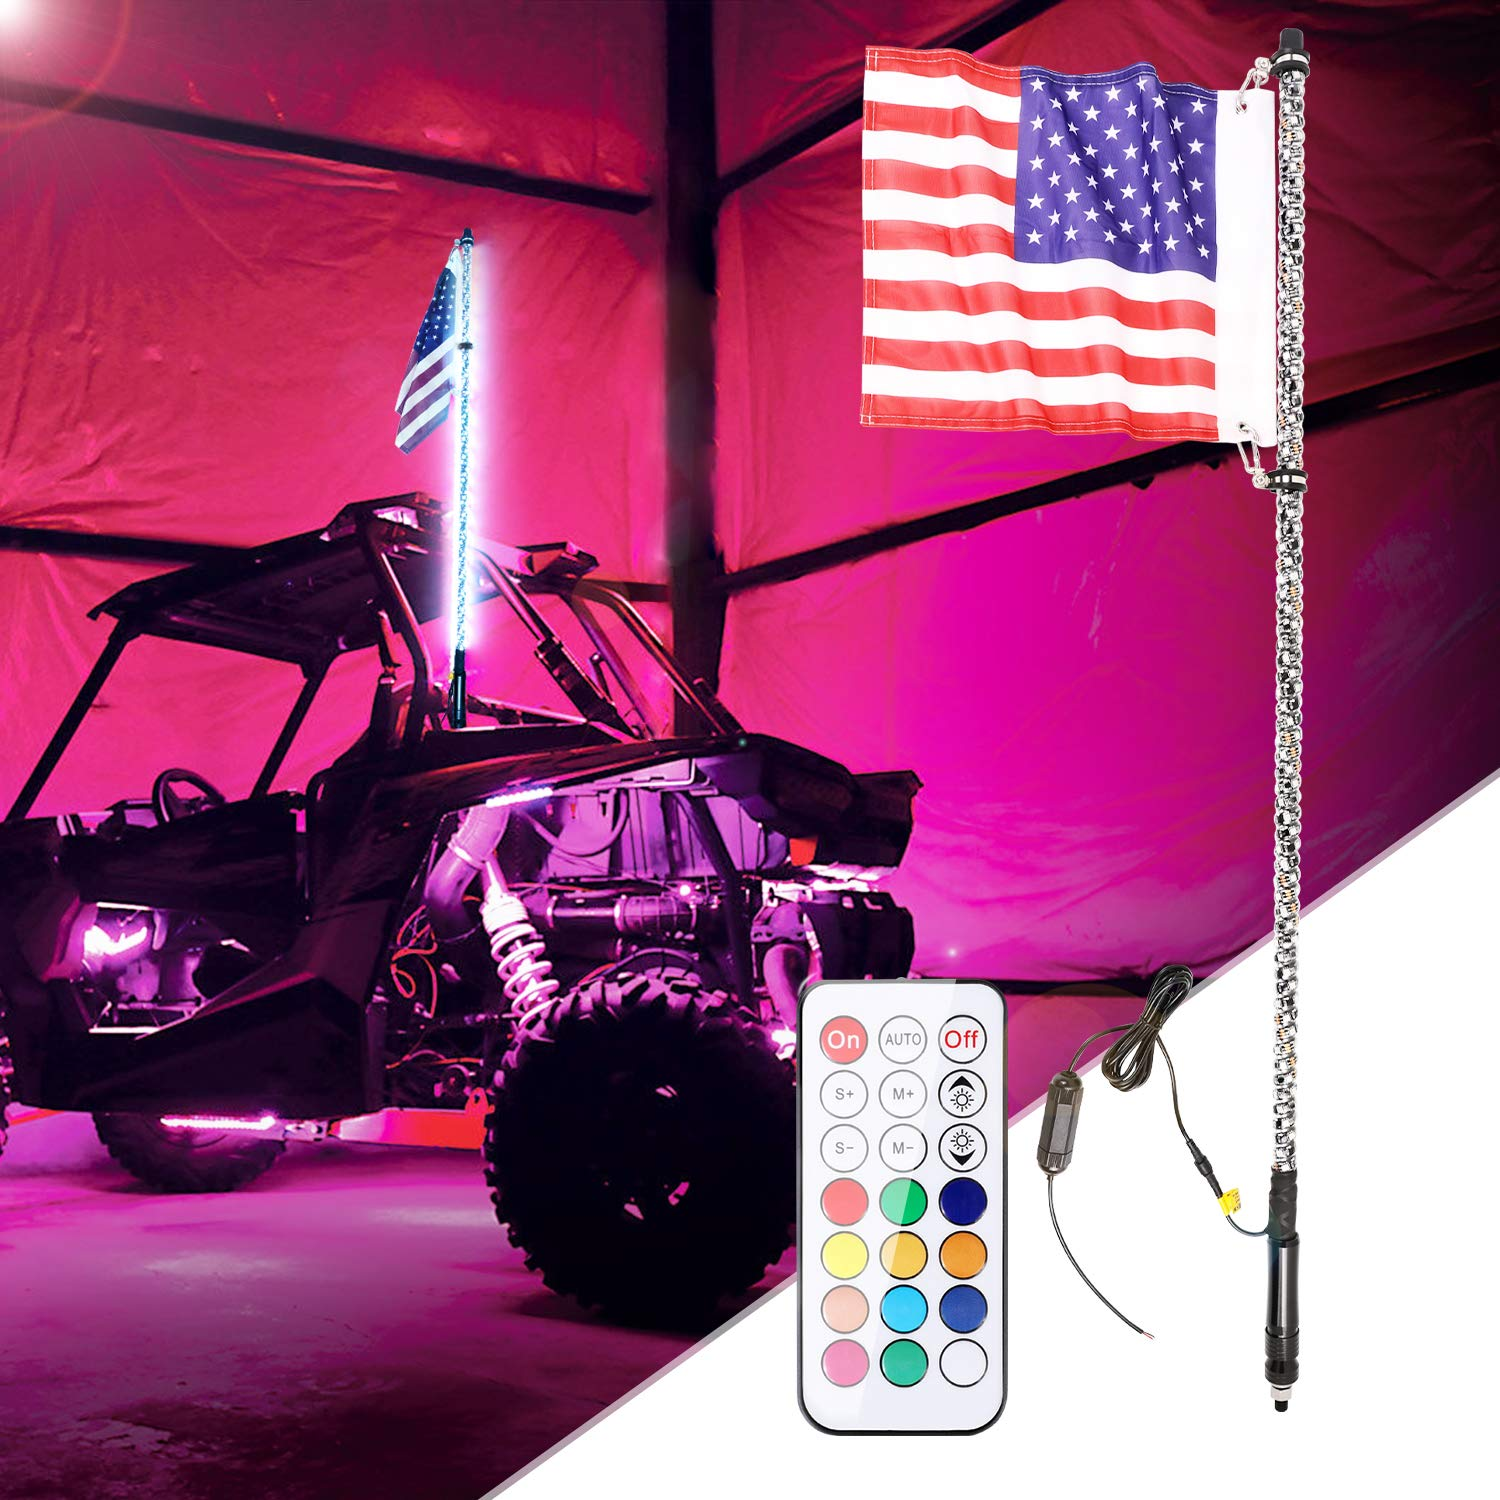 4FT LED Whip Lights SWATOW 4×4 RGB LED Chasing Light 360° Spiral LED Whips Wireless Remote Off Road Lighted Antenna LED Light for off-road, UTV, ATV, RZR, Dunes, Jeep, Trucks, Boat by SWATOW 4x4